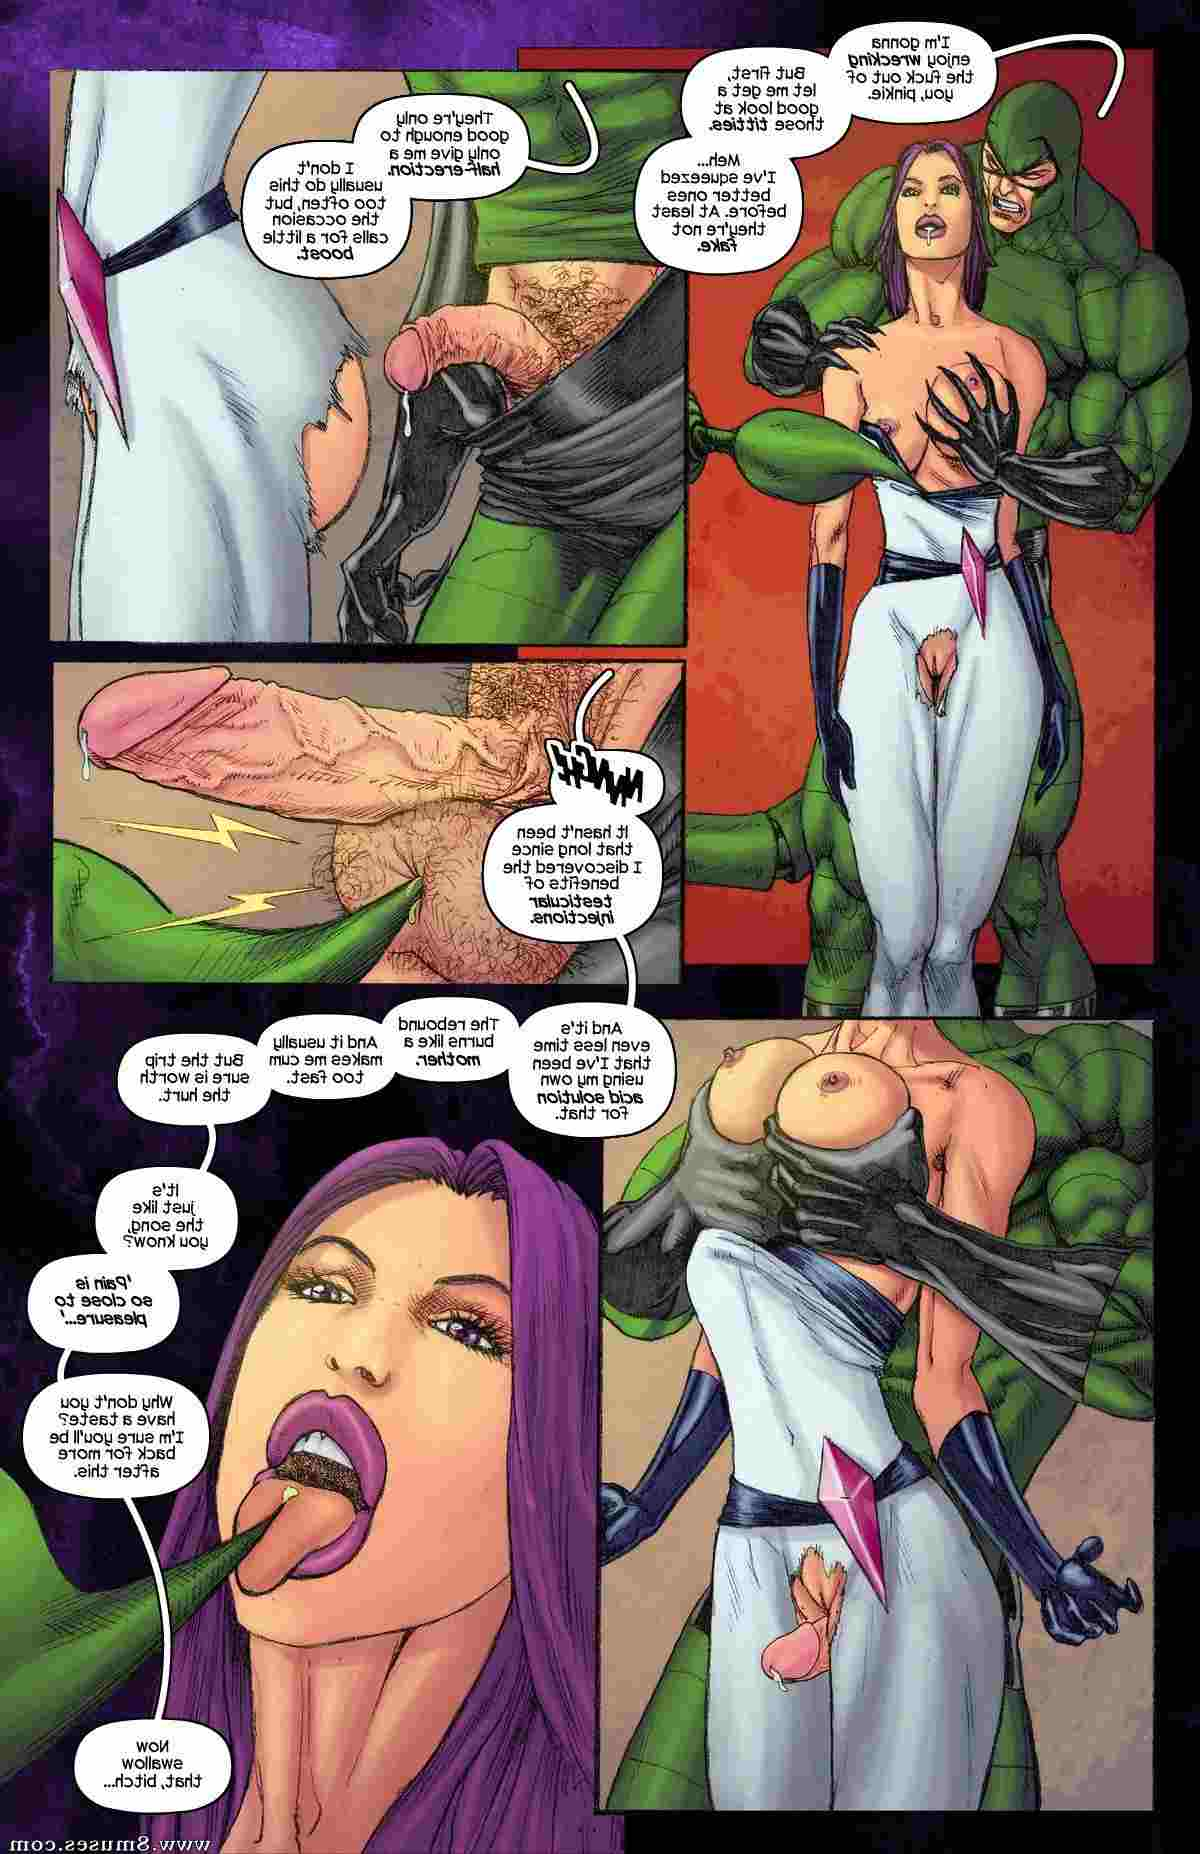 Tracy-Scops-Comics/Jessica-Jones Jessica_Jones__8muses_-_Sex_and_Porn_Comics_6.jpg